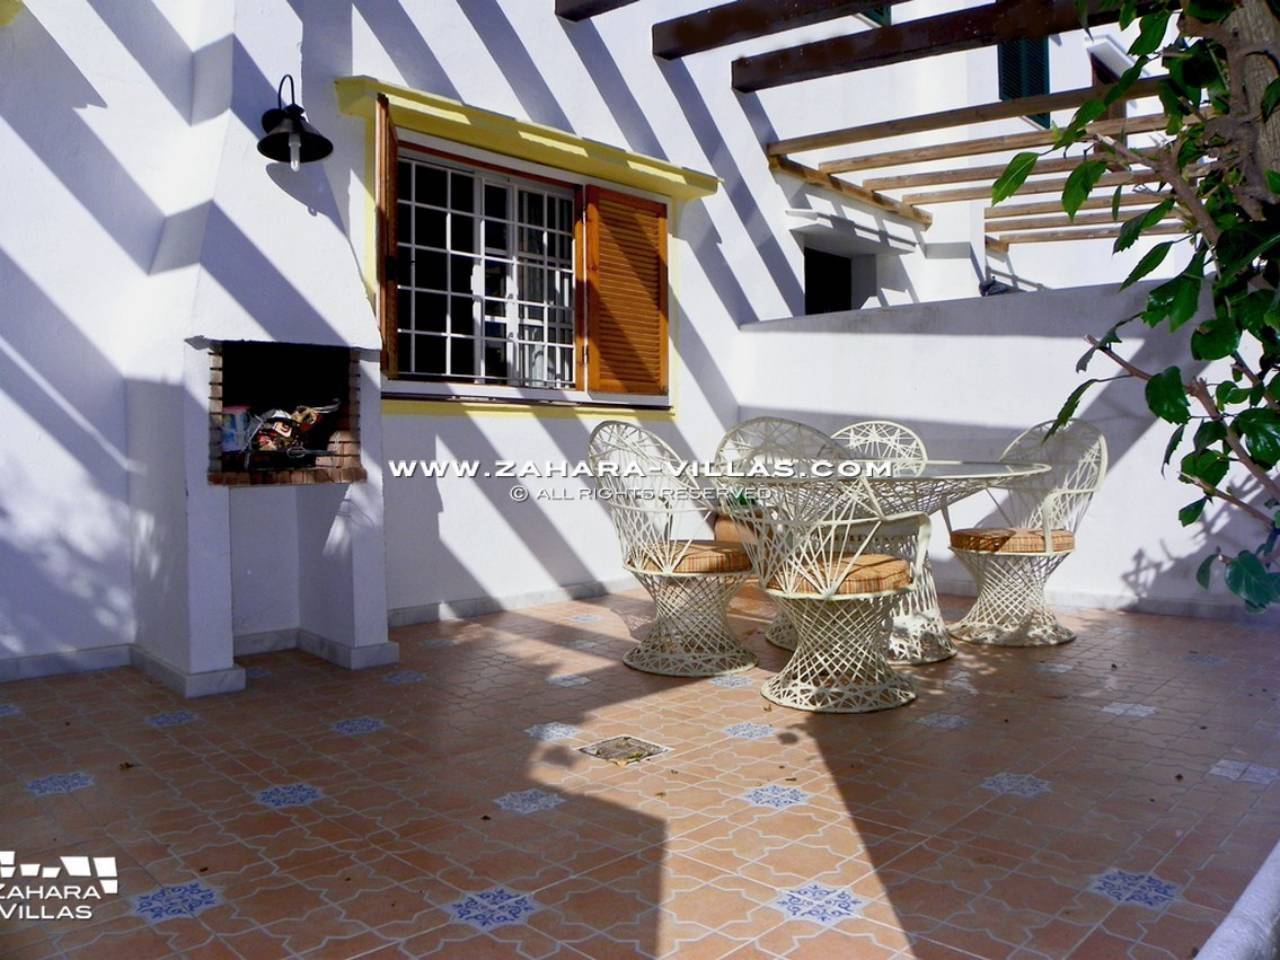 Imagen 15 de Great Townhouse in the village of Zahara de los Atunes for sale